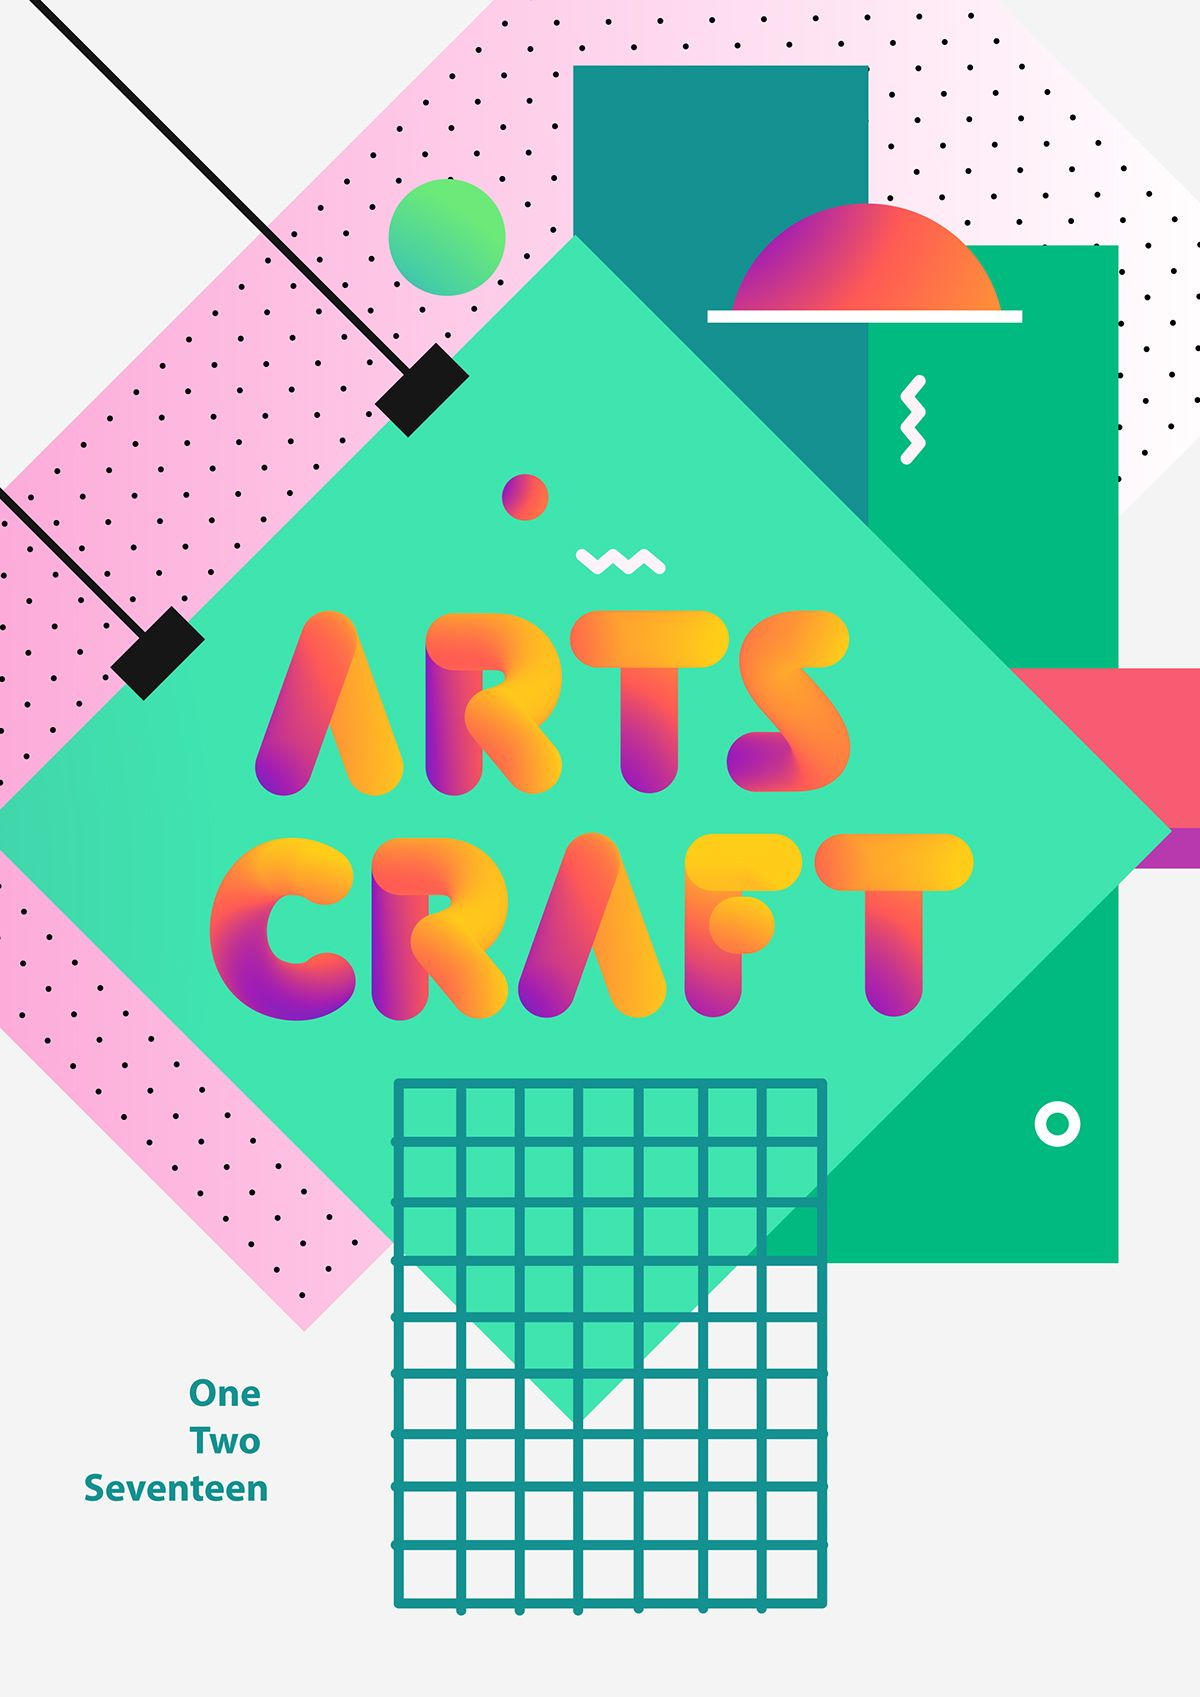 Free SOFTA FONT Instagramic colors on Behance (With